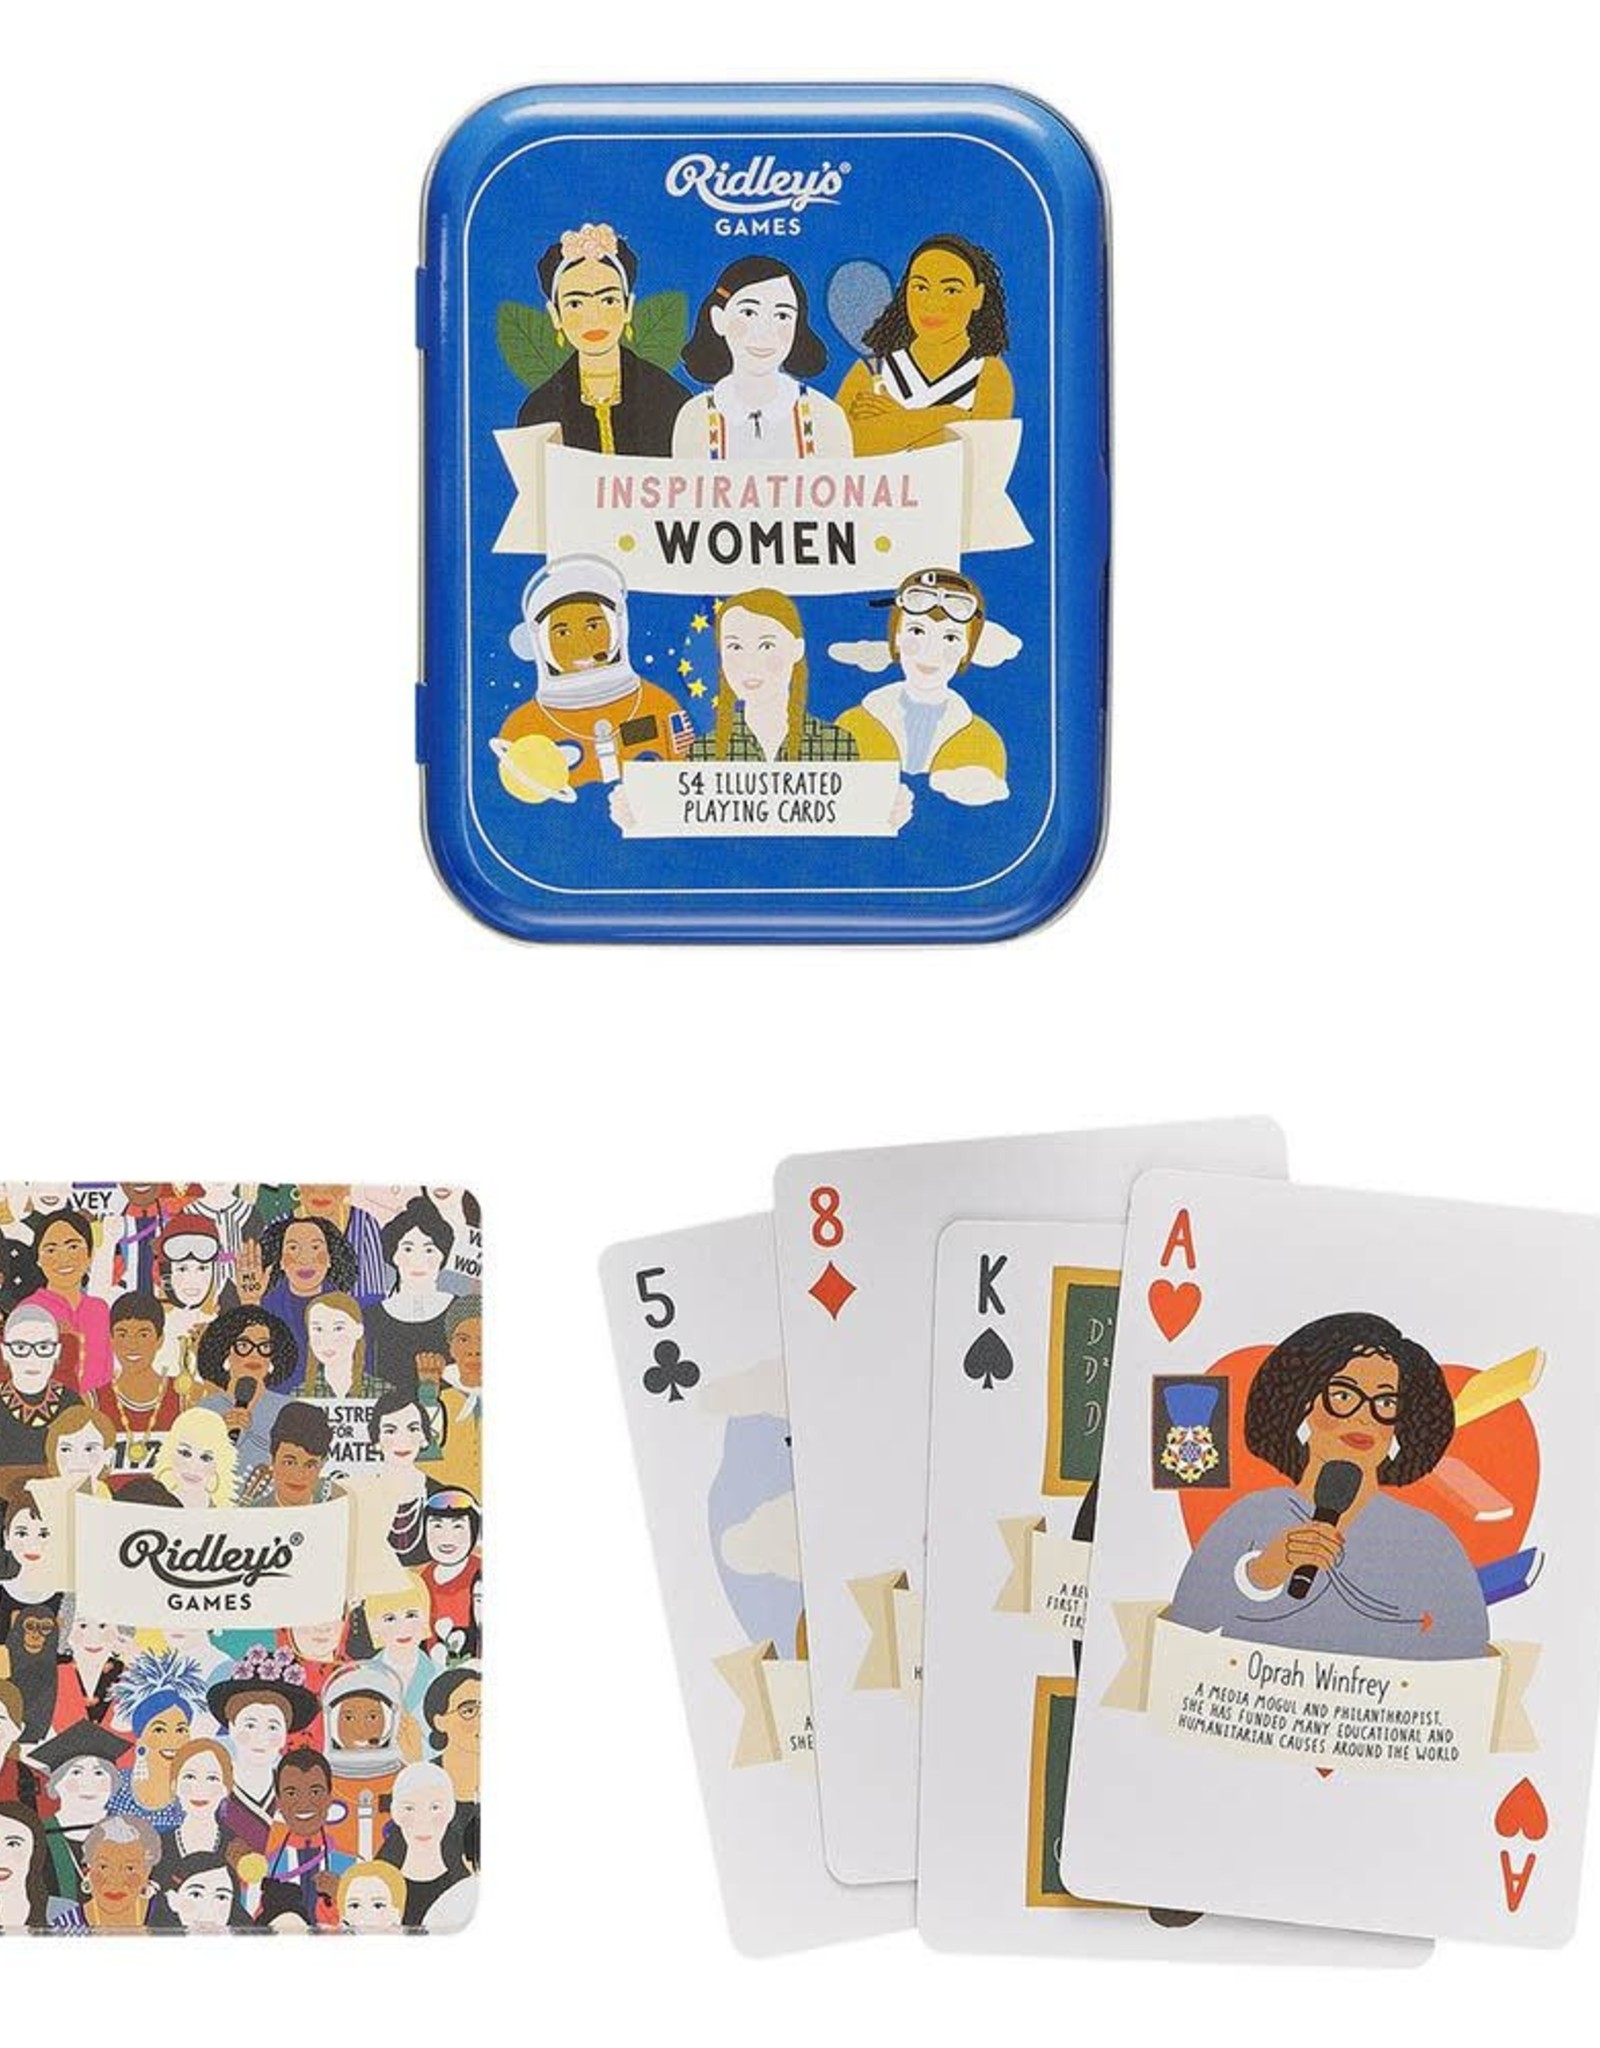 Ridley's Inspirational Women Playing Cards